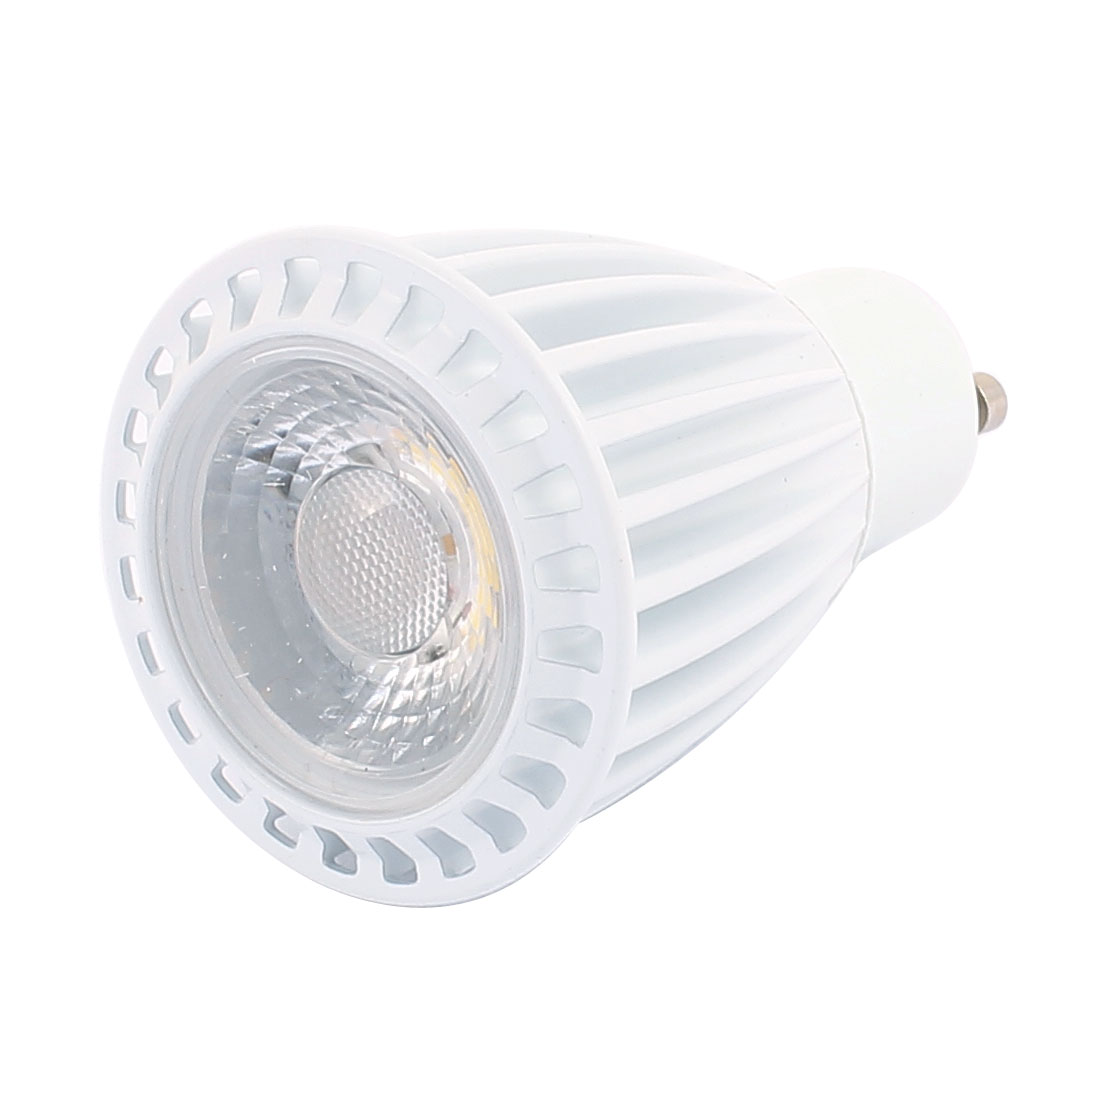 AC85-265V 7W GU10 Base COB LED Spotlight Bulb Downlight Energy Saving Pure White